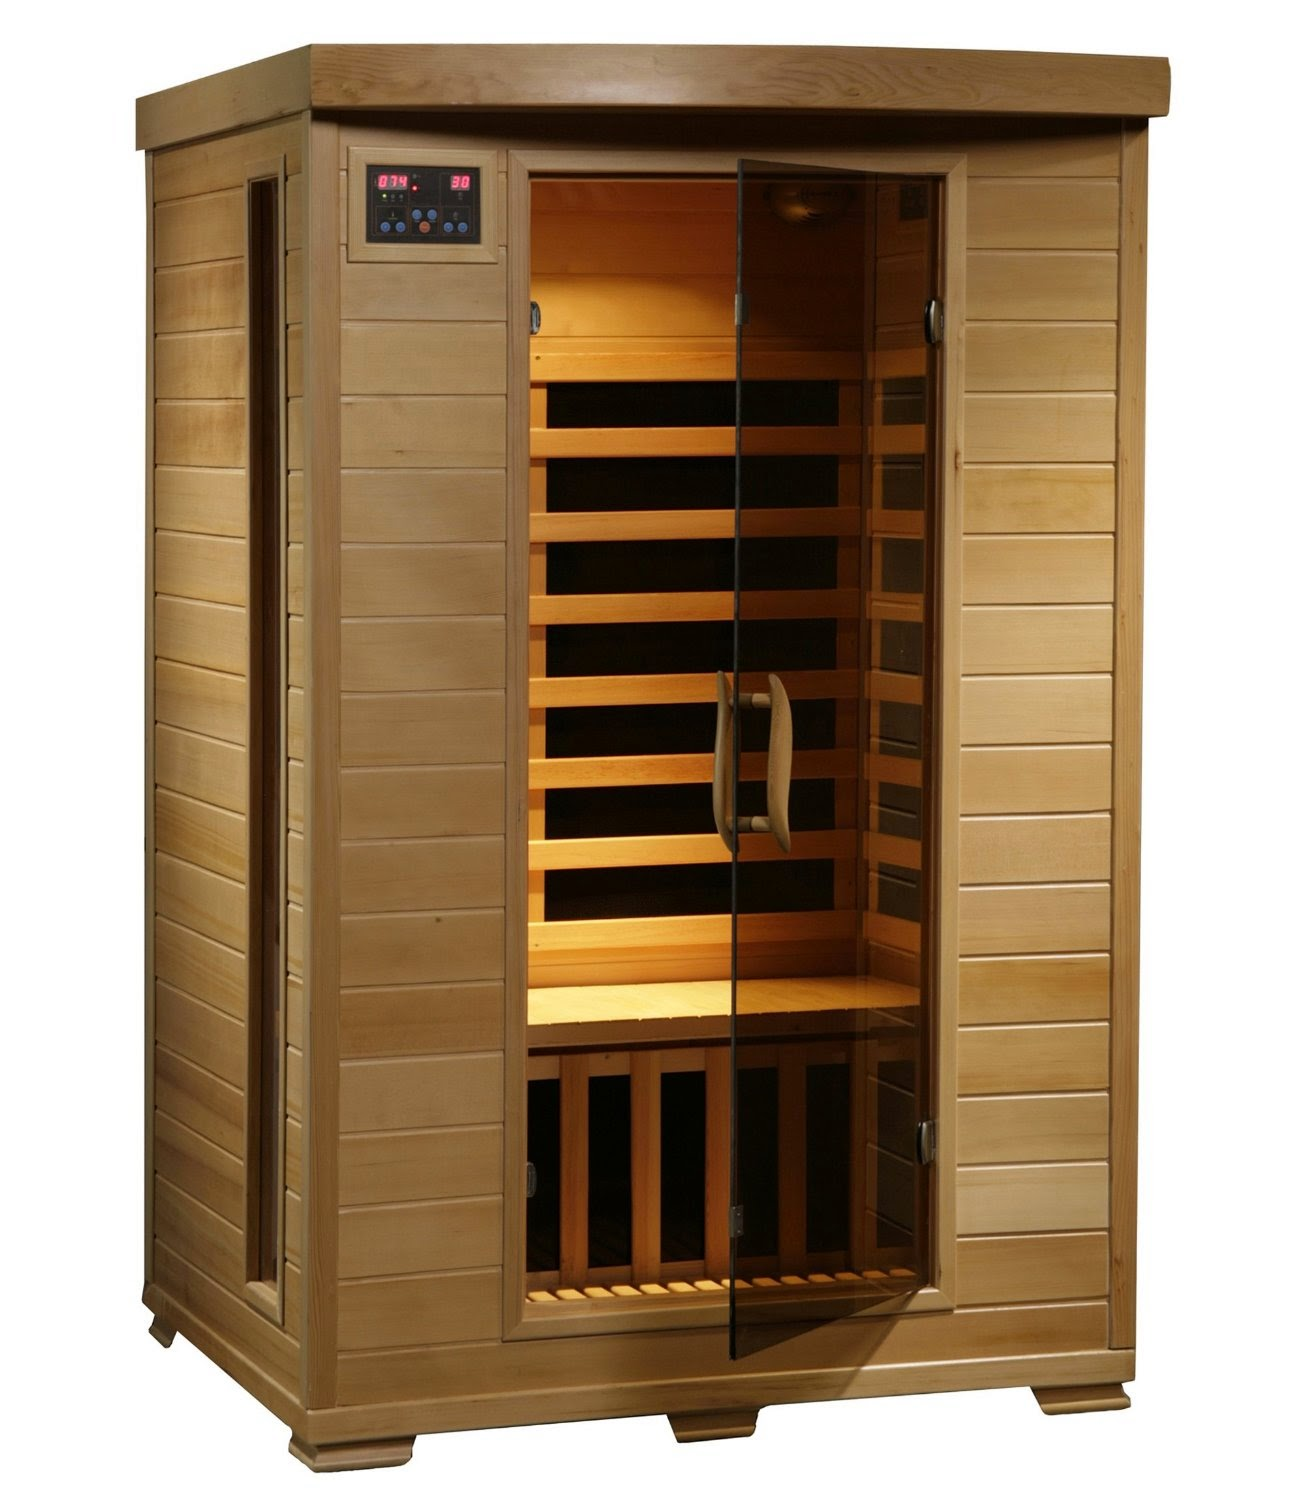 health and fitness den radiant saunas bsa2409 2 person hemlock infrared sauna with 6 carbon. Black Bedroom Furniture Sets. Home Design Ideas